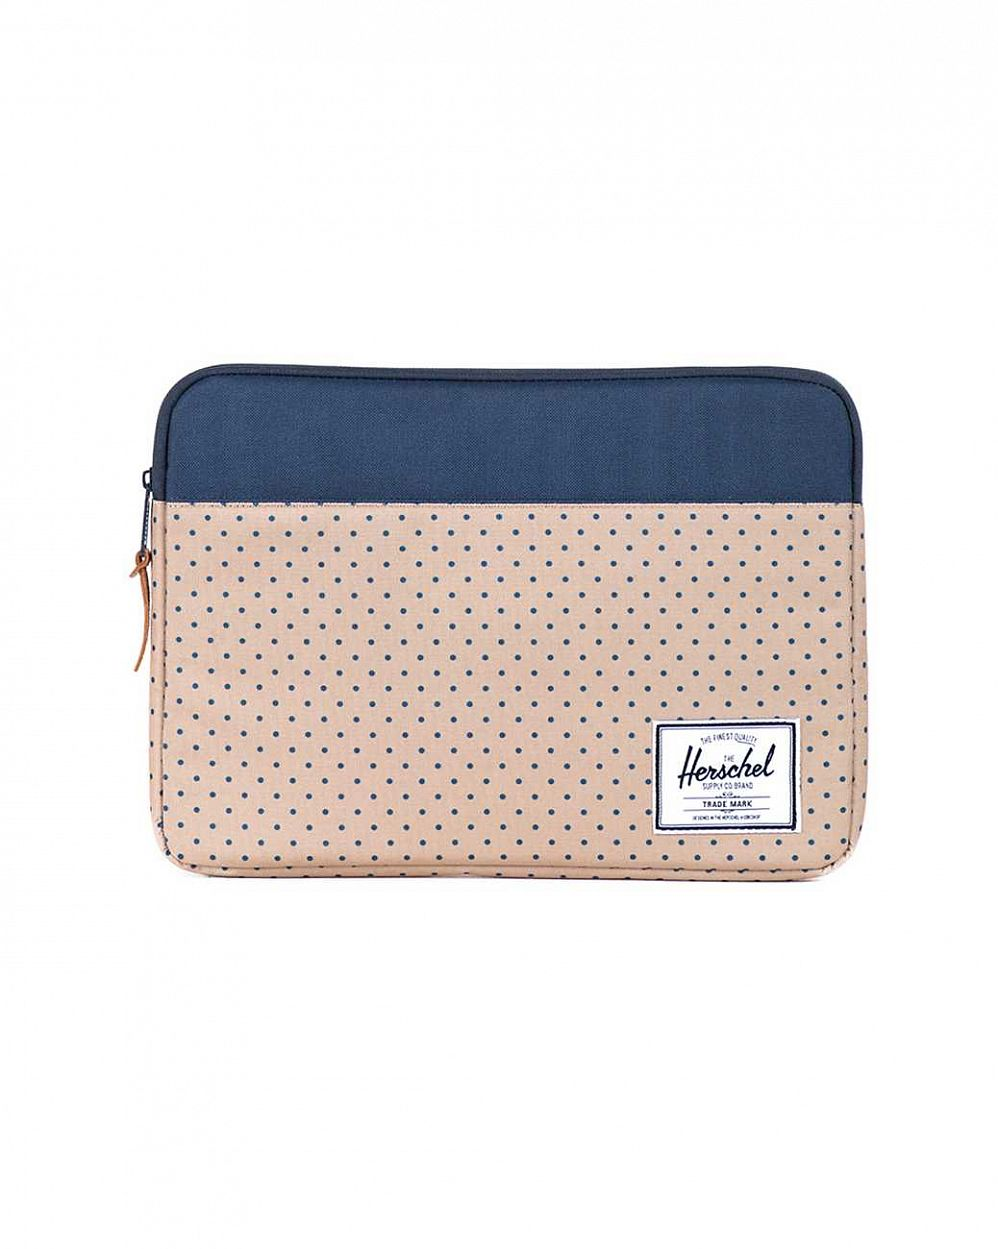 Чехол Herschel Anchor Sleeve для 13'' Macbook Khaki Polka Dot Navy отзывы